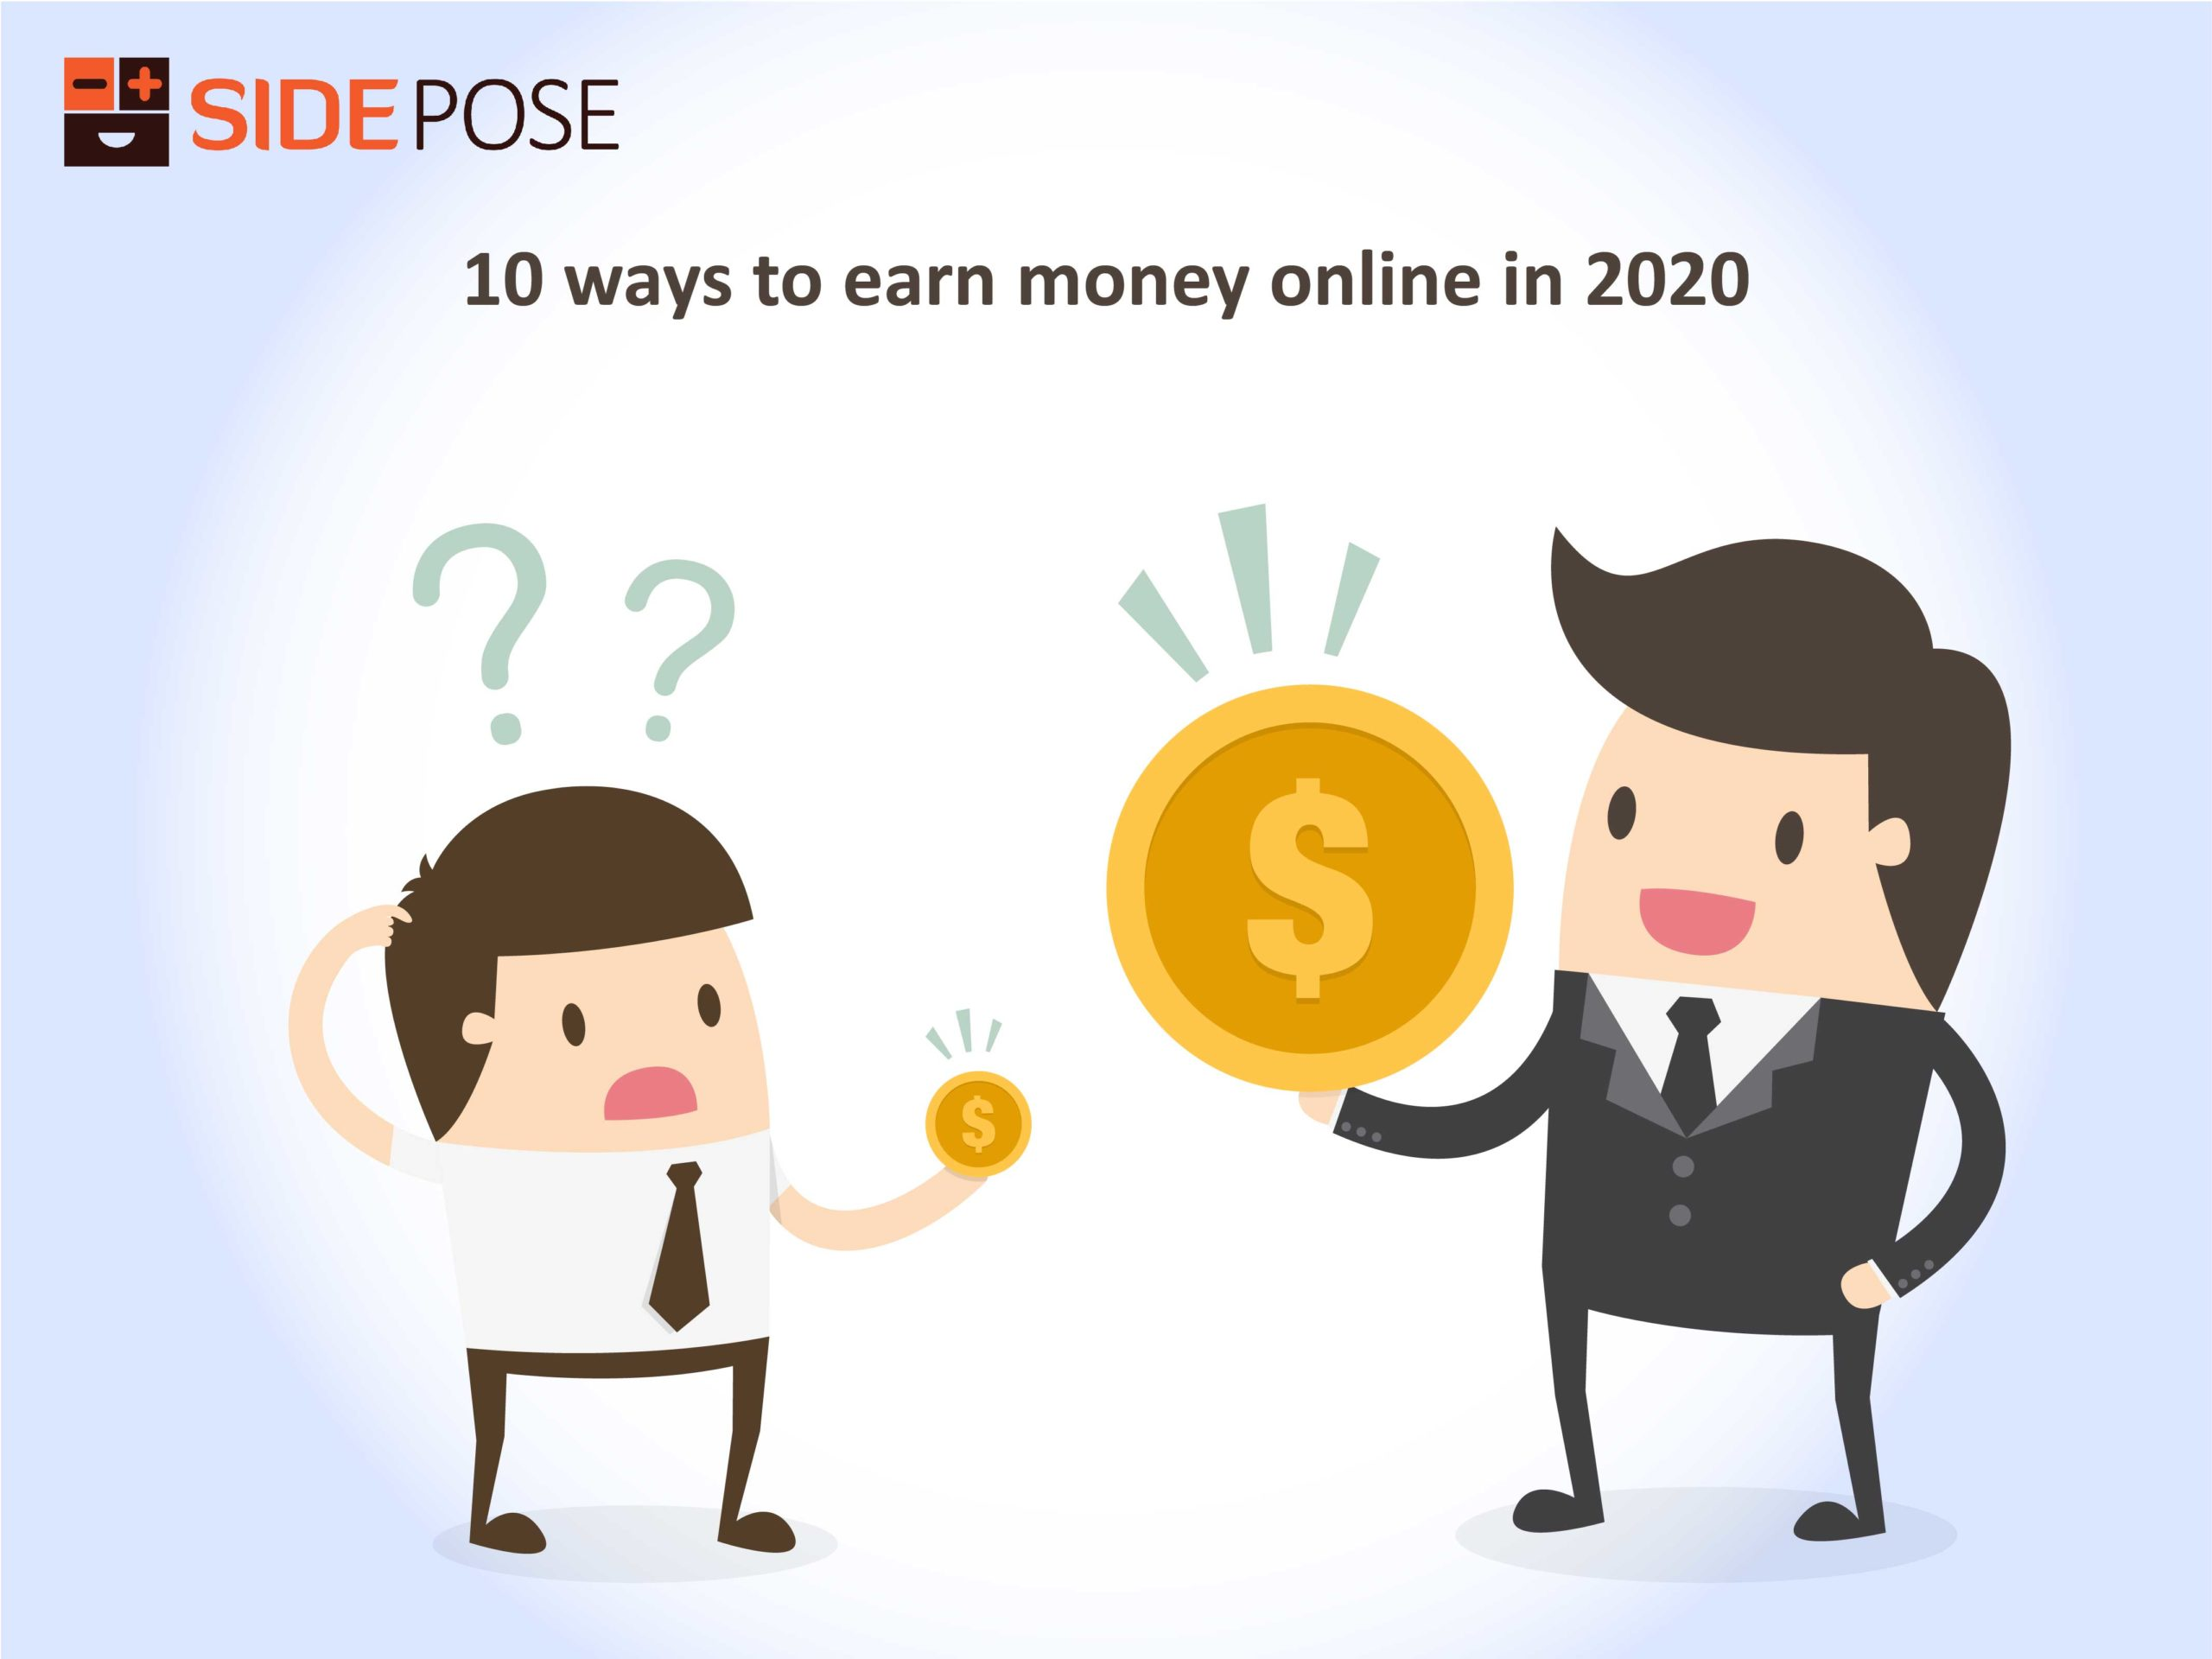 10 secrets to earn money online in 2020